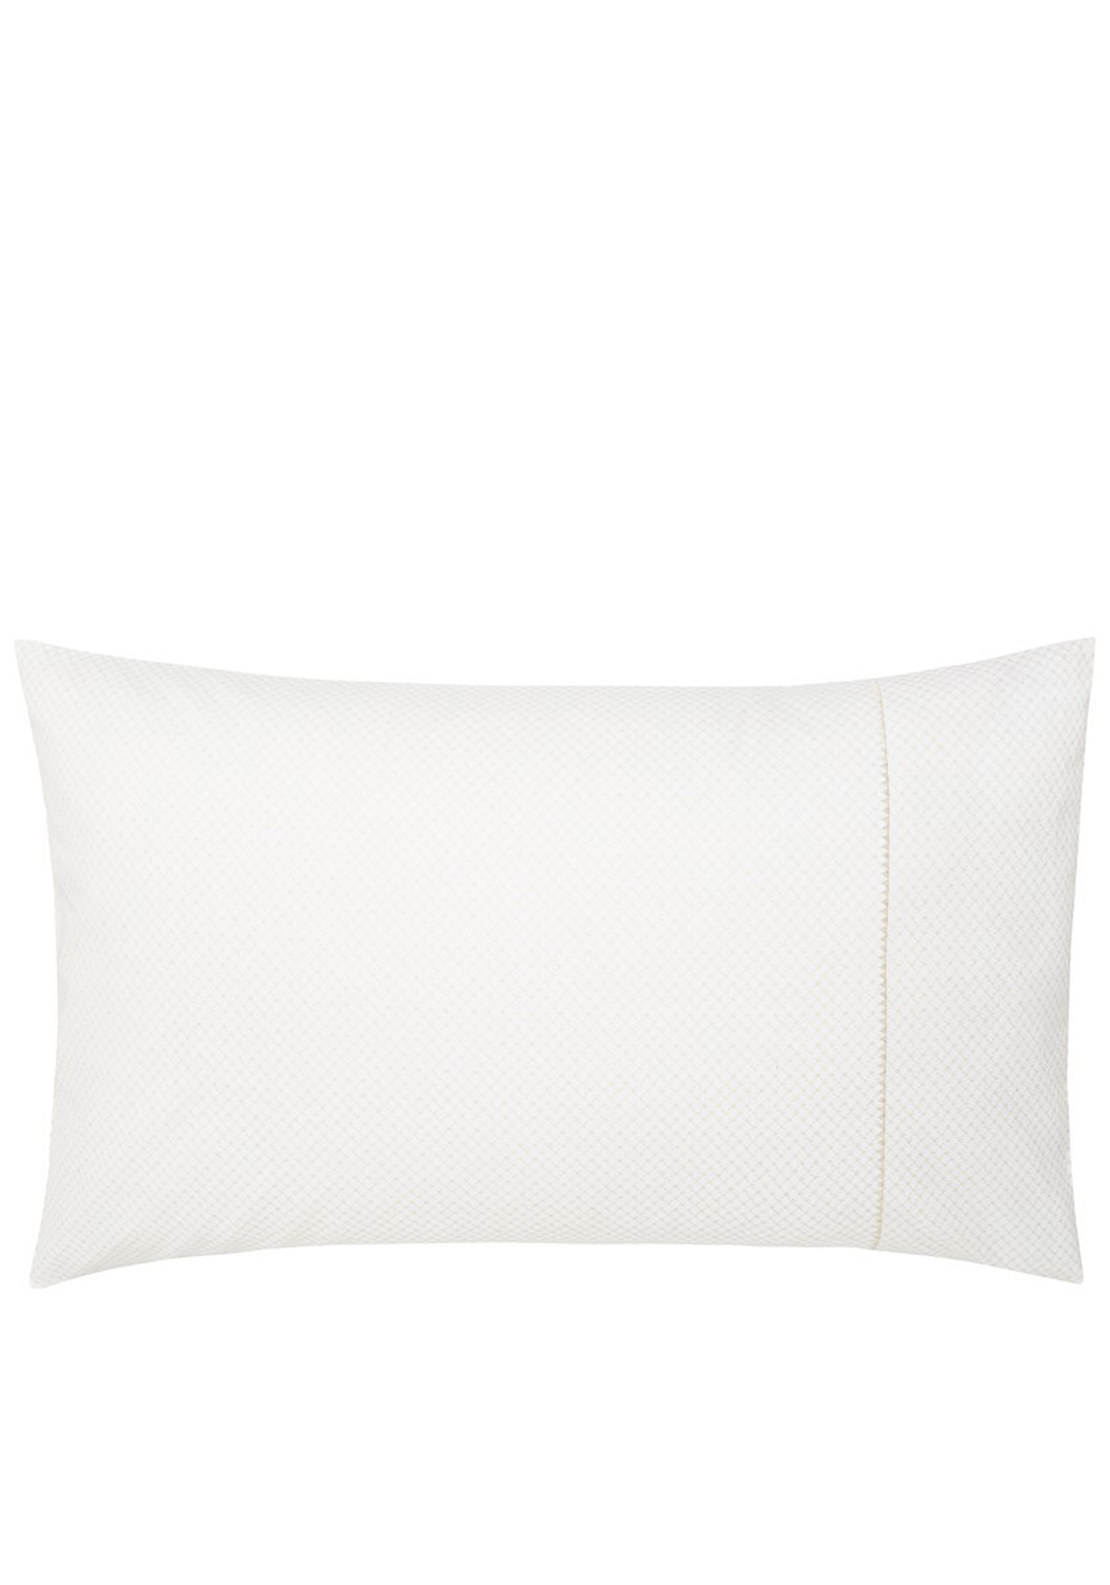 Fable Orlantha Housewife Pillowcase, Linen